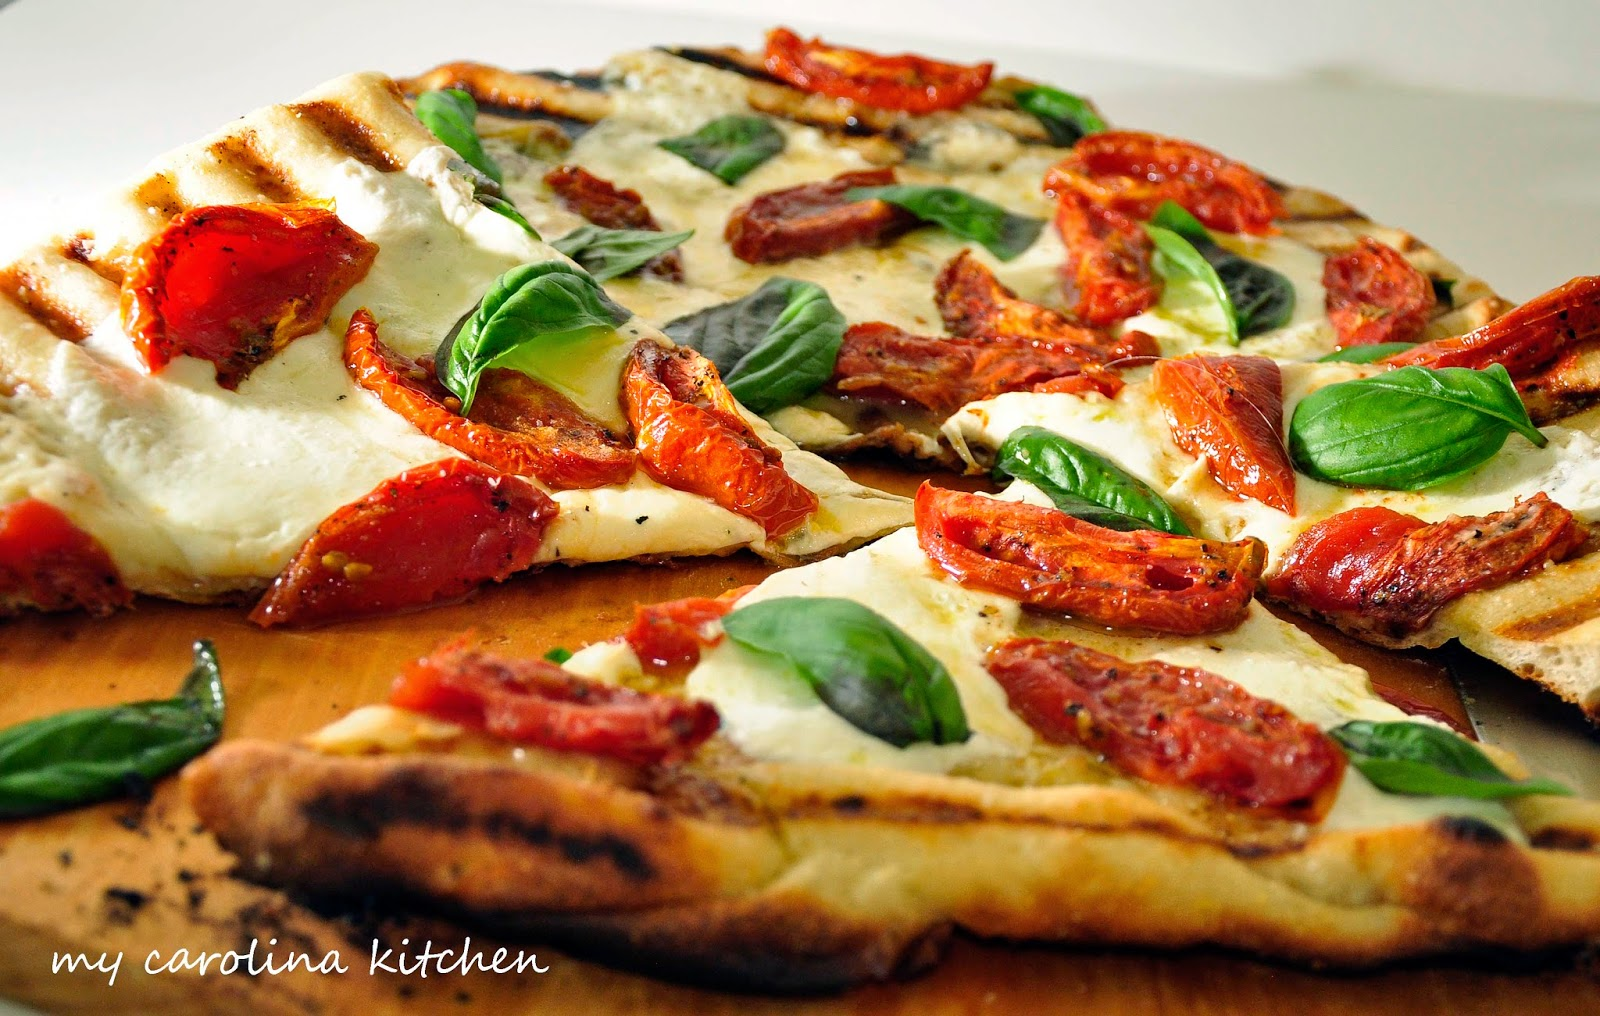 ... have a wood fired oven to get great pizza pizzas can be cooked at home